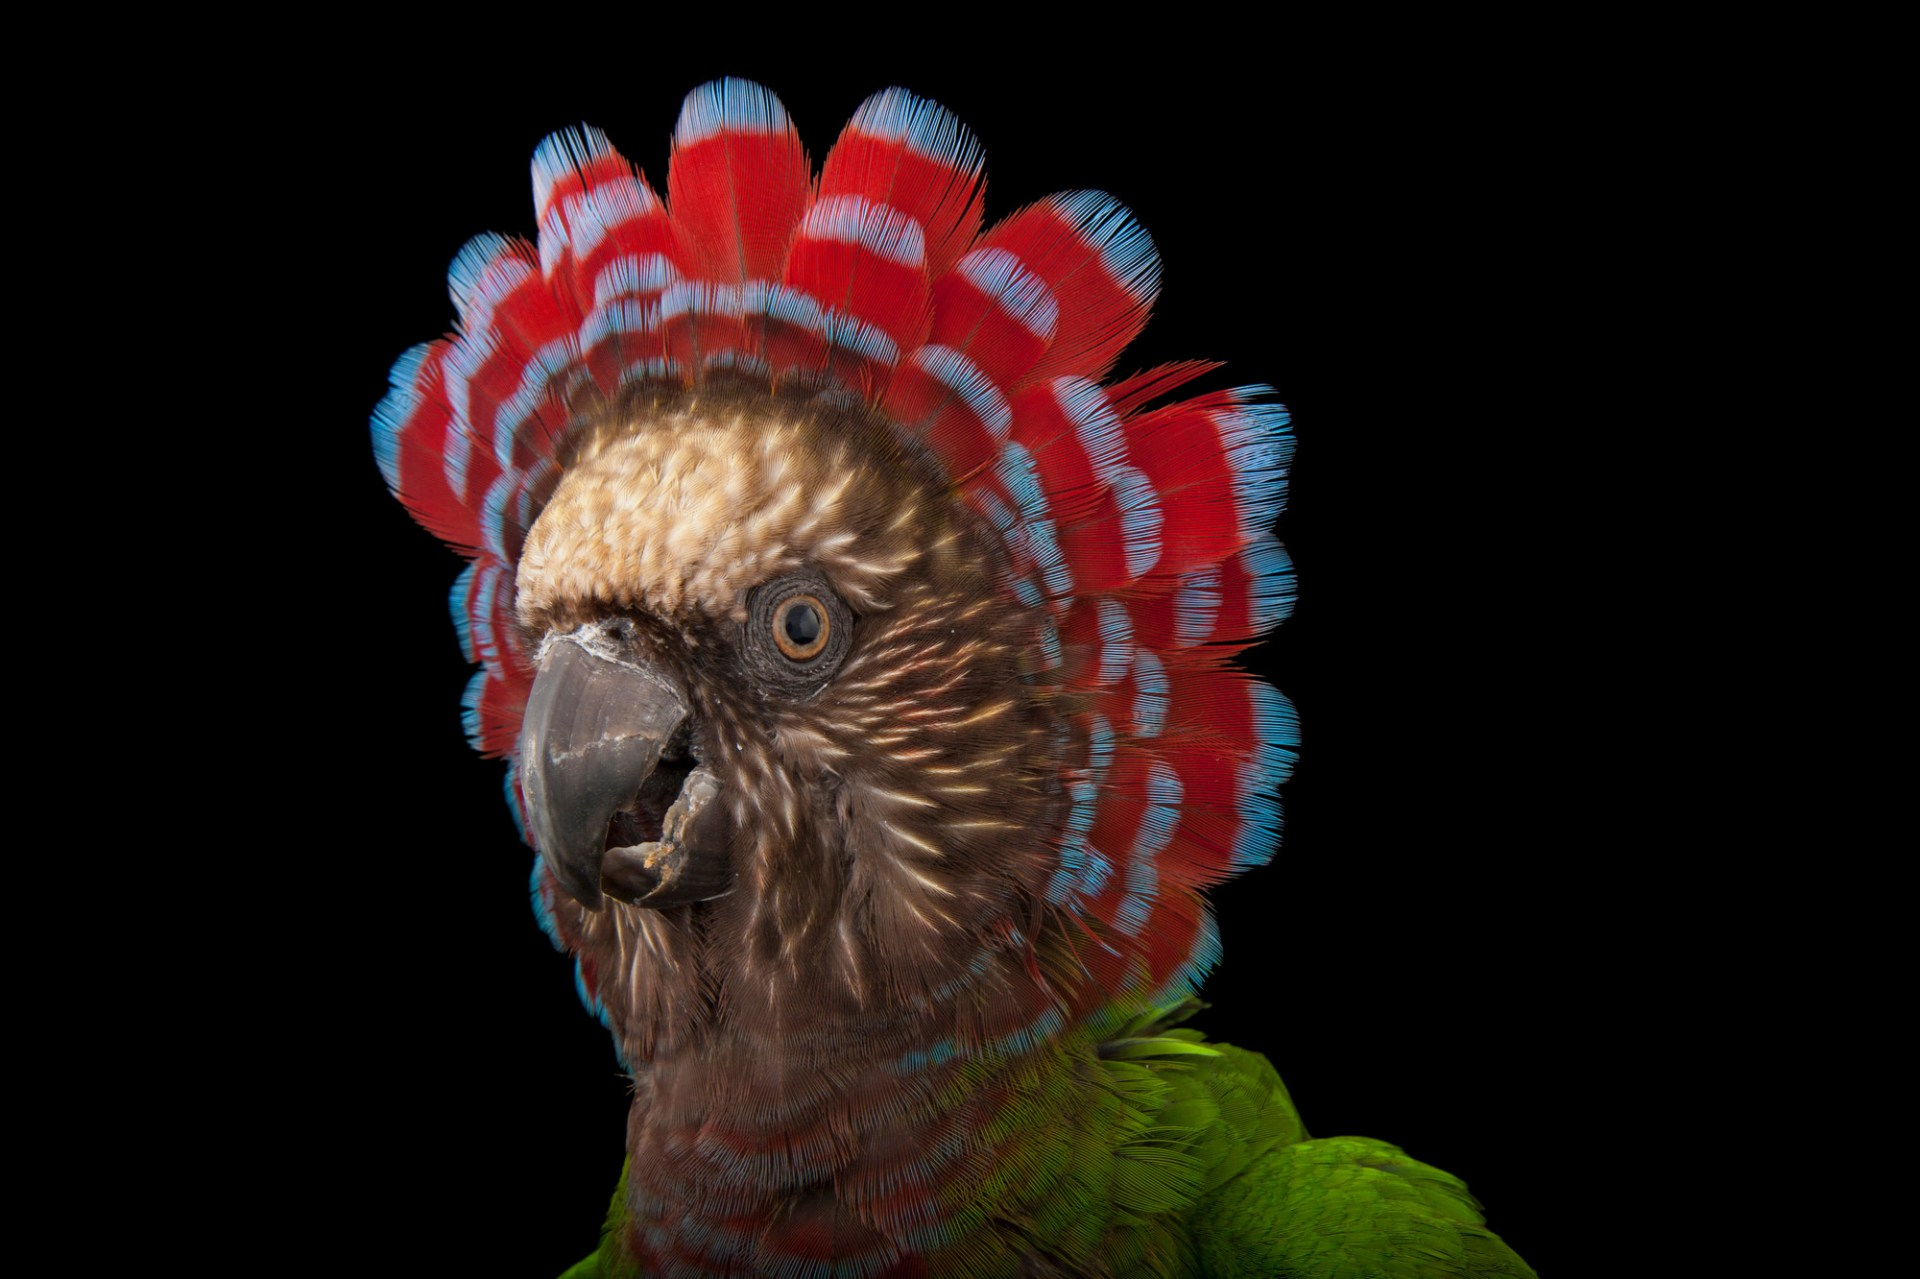 Photo: A red fan parrot (Deroptyus accipitrinus accipitrinus) at the Houston Zoo.